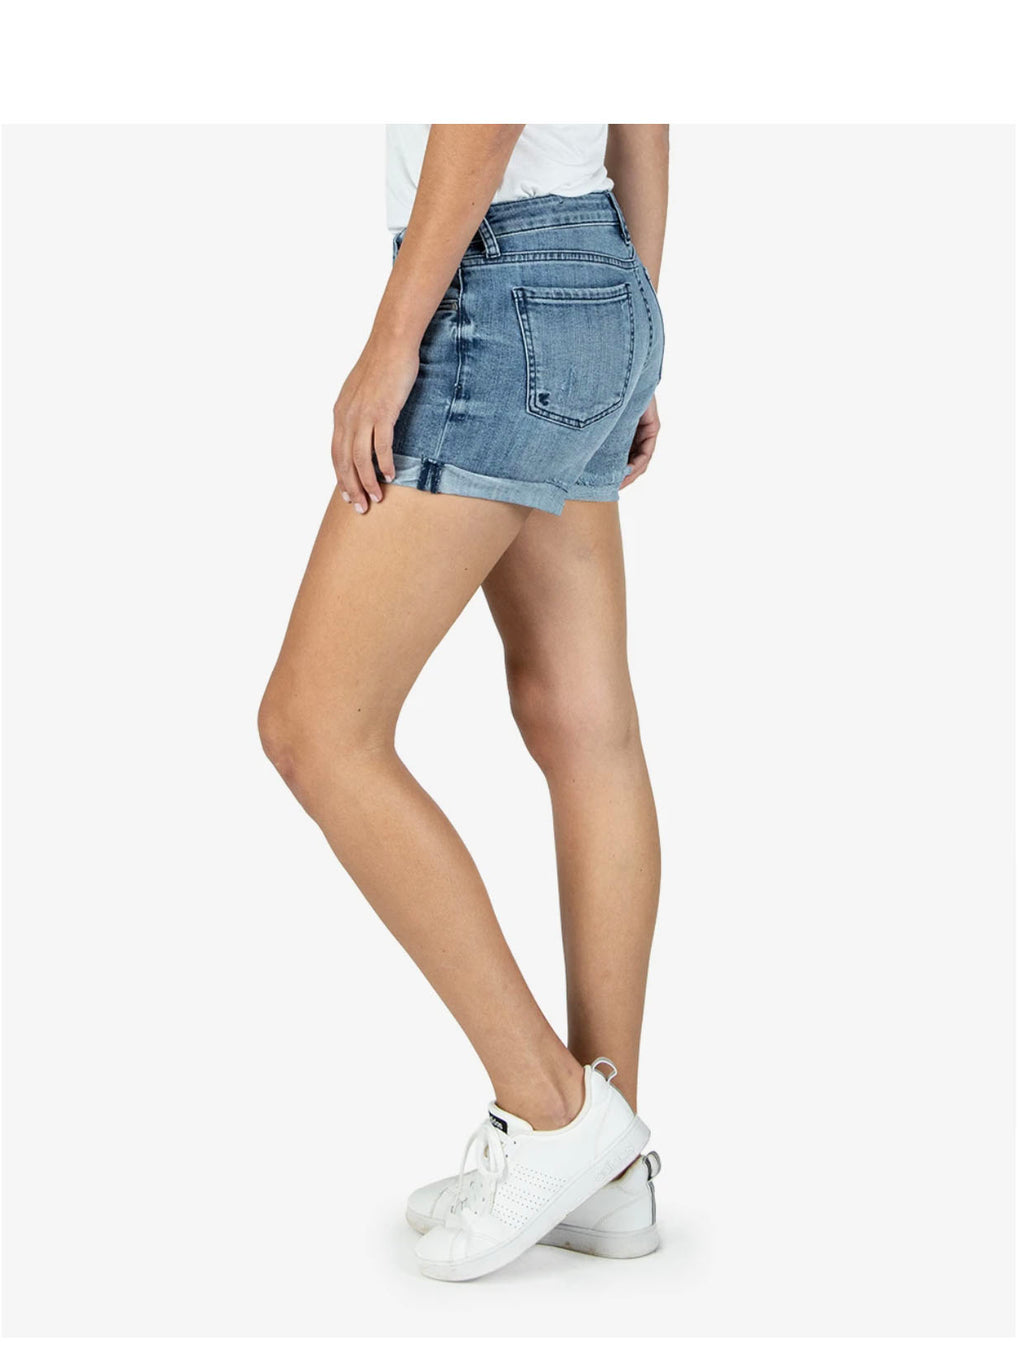 Kut Madeline Boyfriend Short in Research Wash